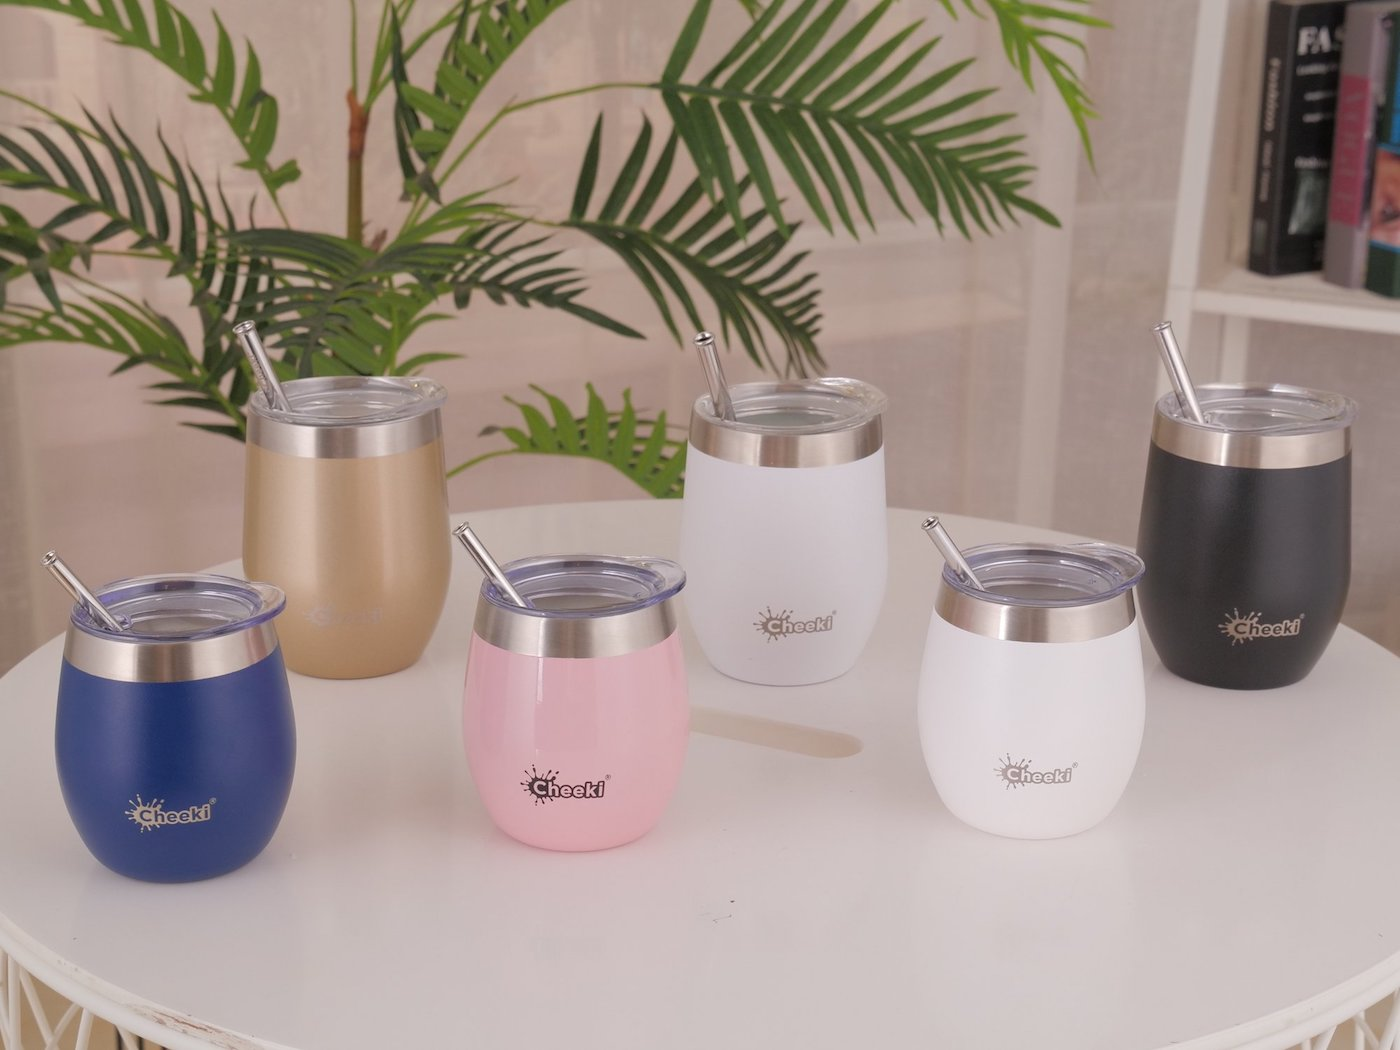 Insulated wine tumblers on table